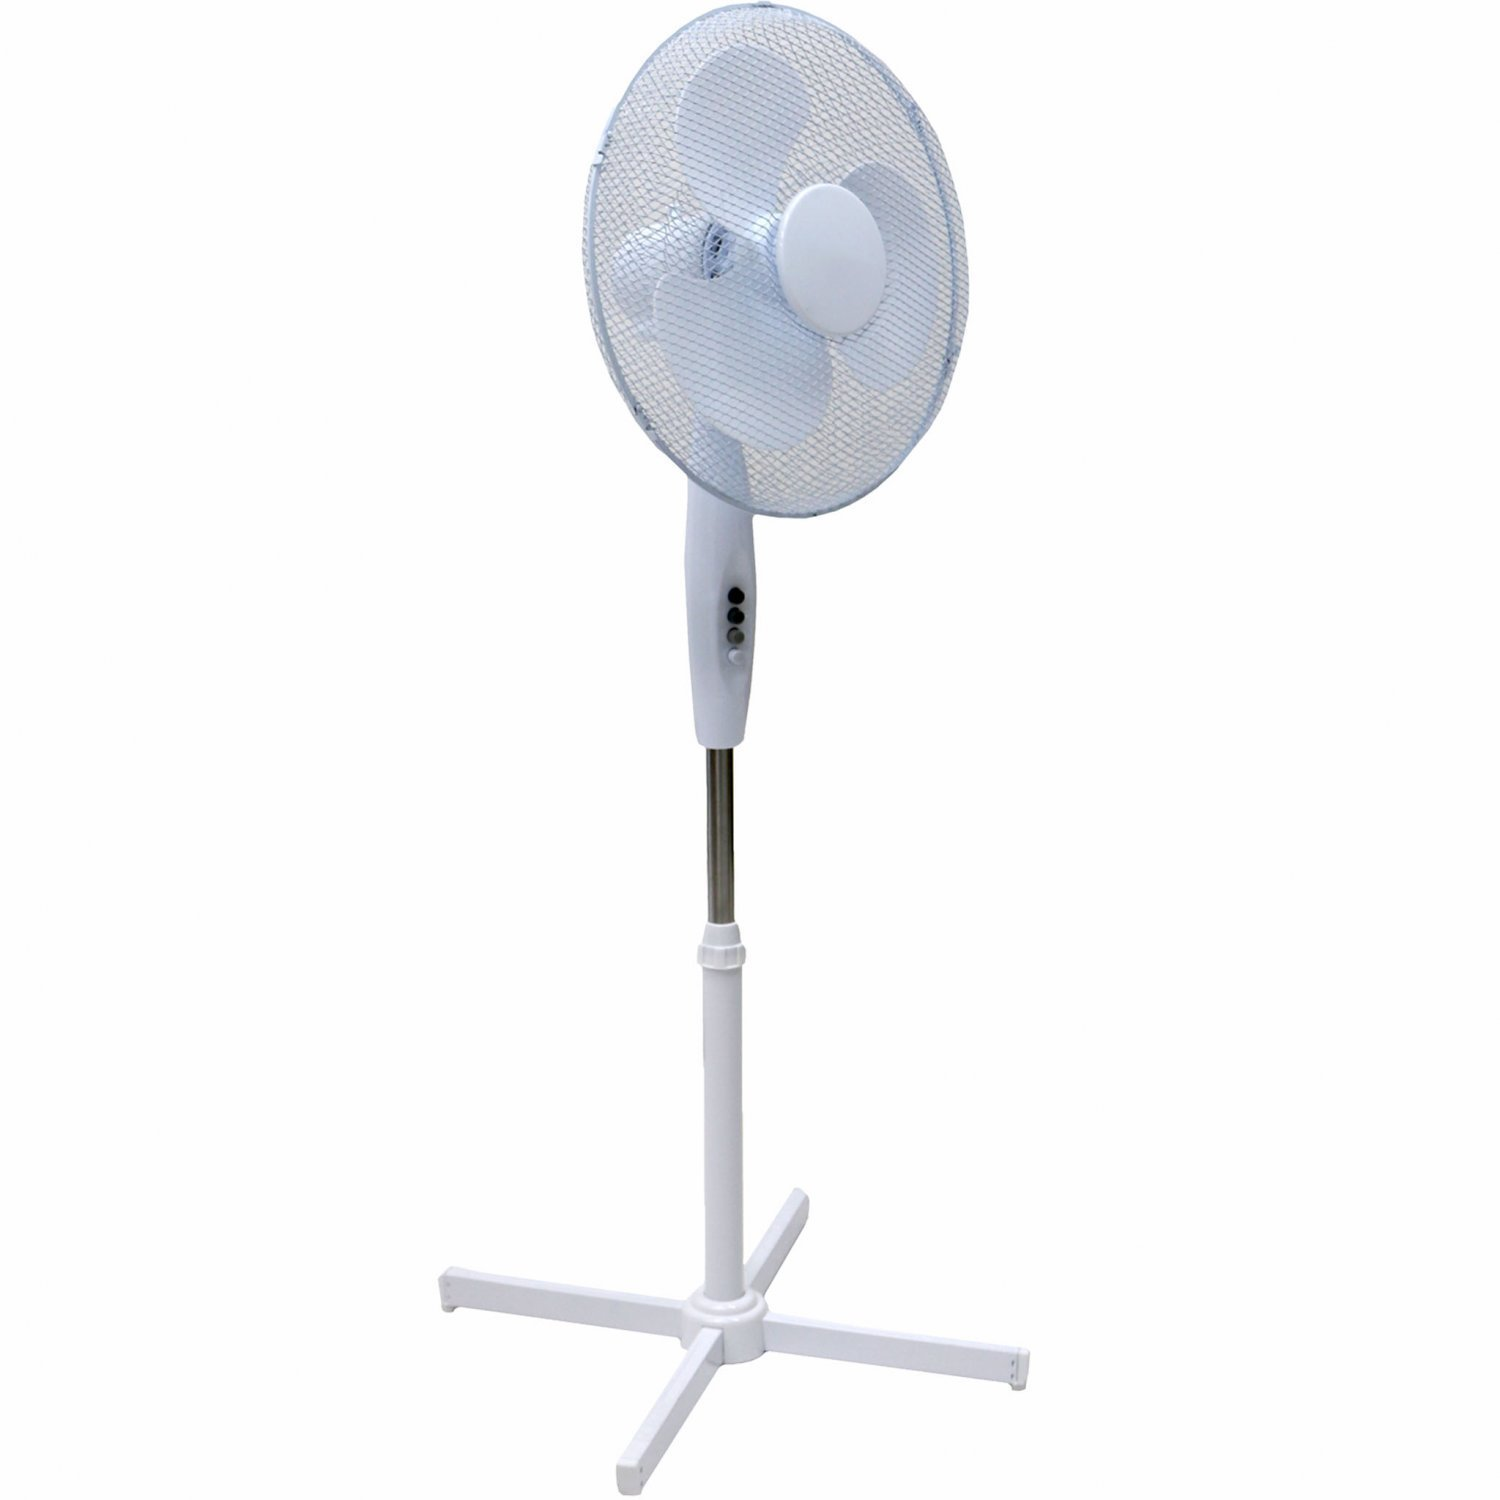 Generic Electrical 16-Inch Oscillating Pedestal Stand Fan, White Squizzas! SQ2444